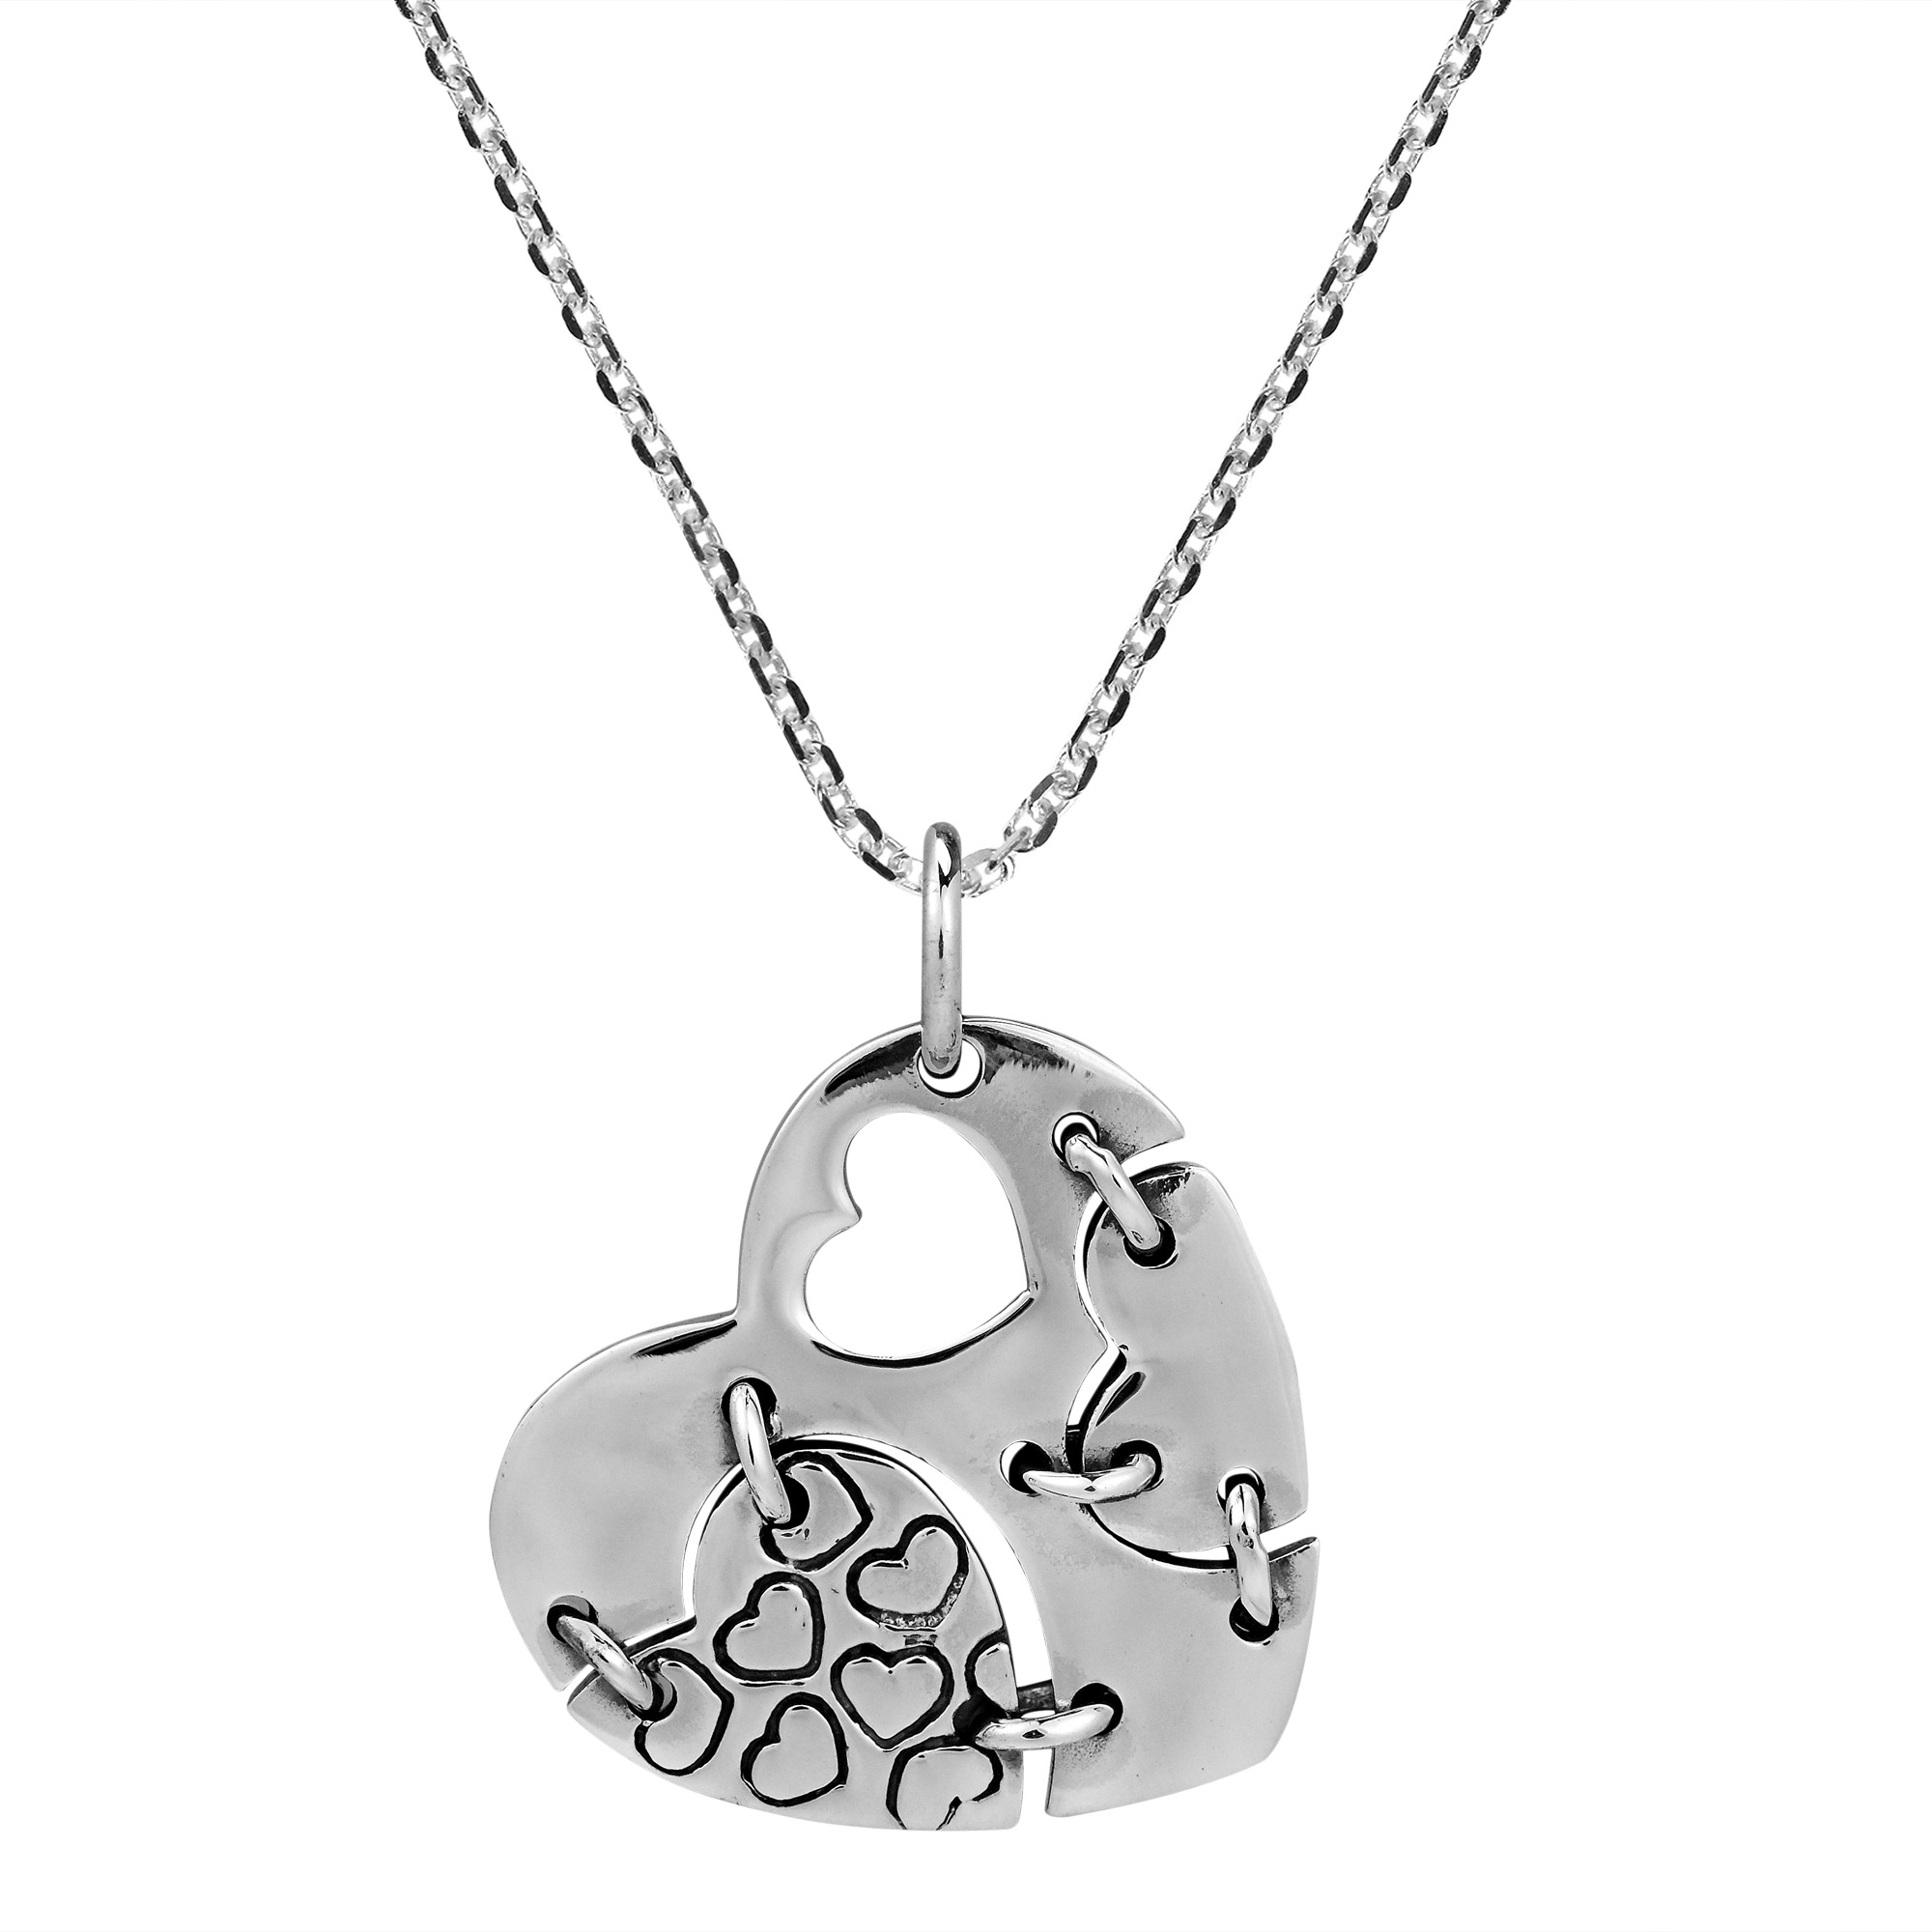 honey silver necklace papaya sterling by jewellery shop infinity necklaces chain pendant